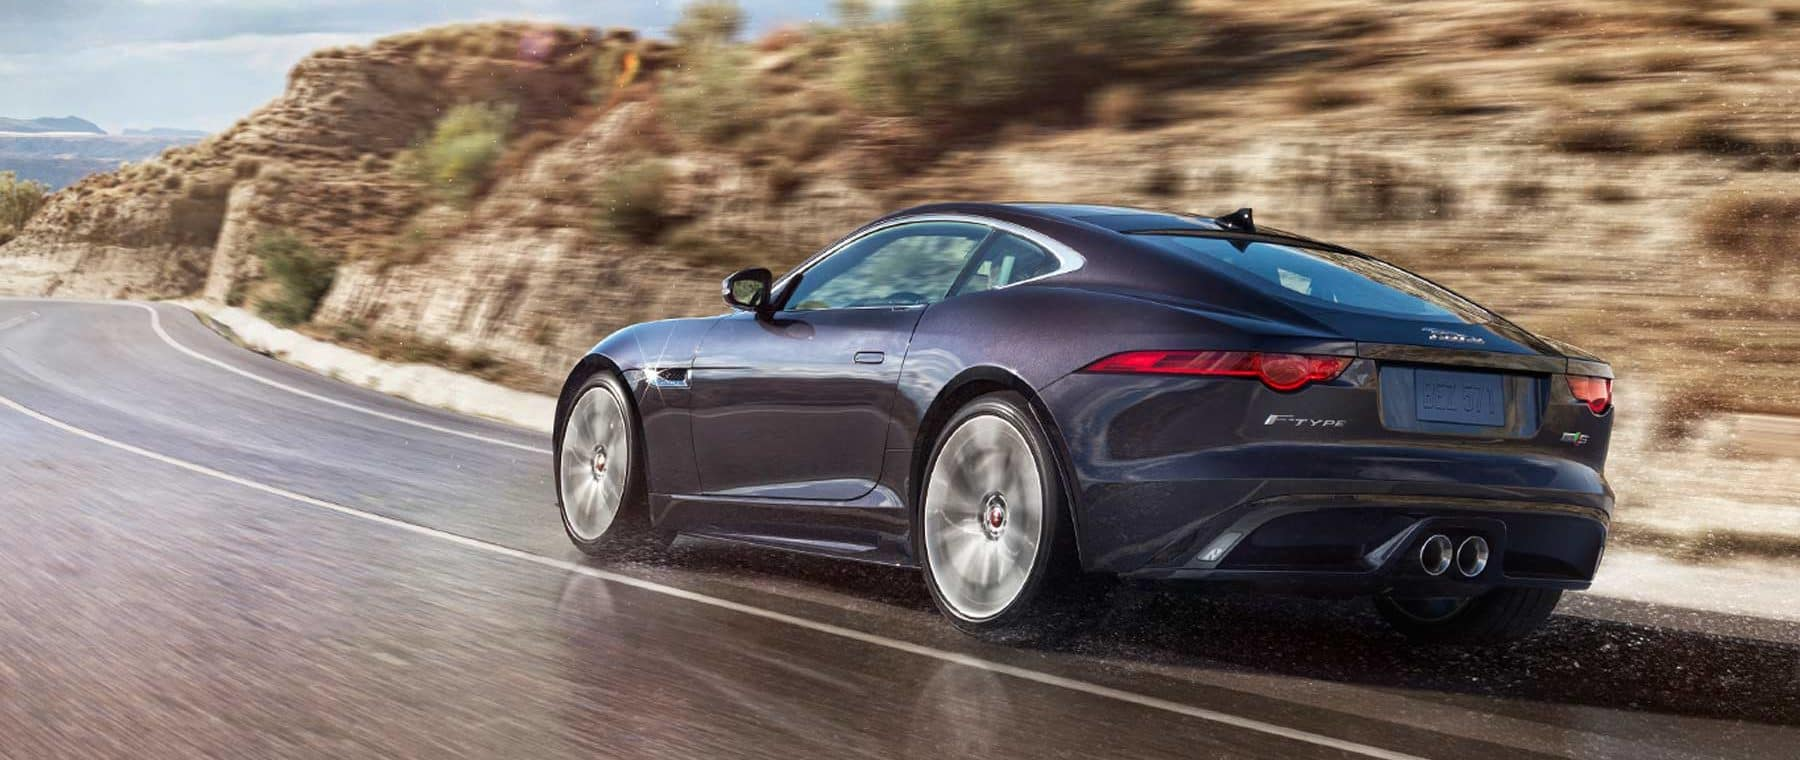 Jaguar F-type driving on a desert road